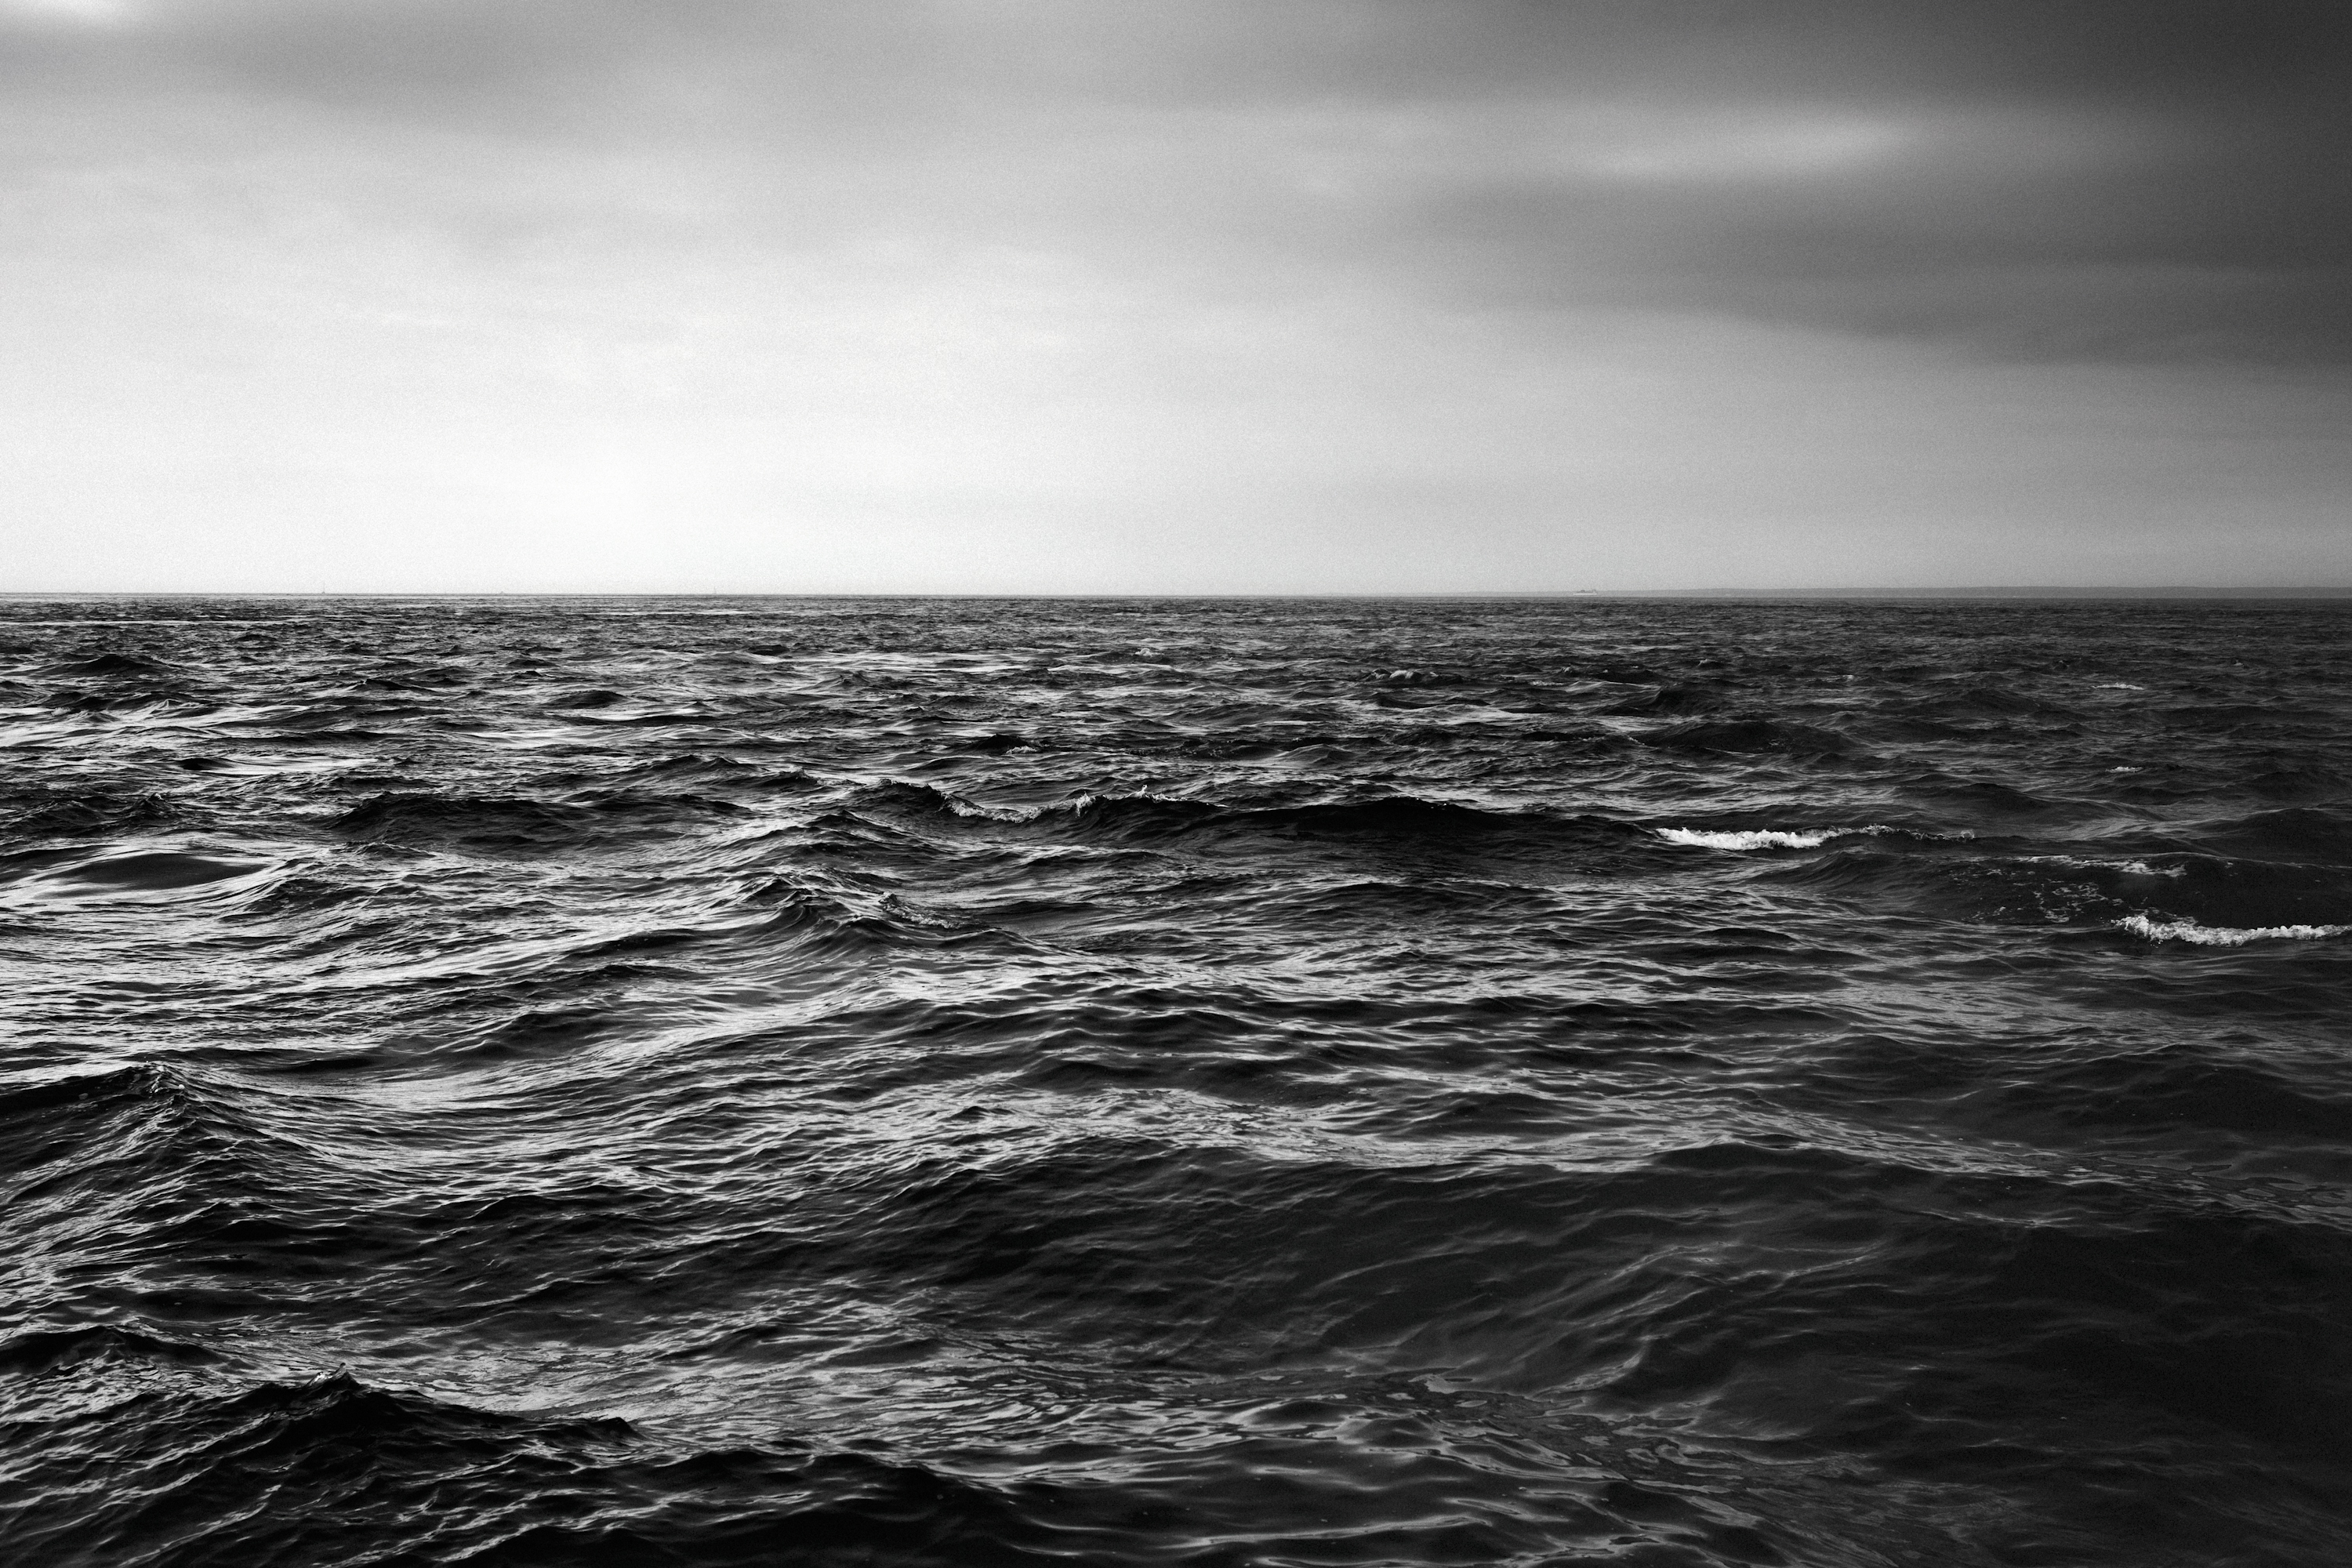 Black And White Ocean Pictures to Pin on Pinterest - PinsDaddy